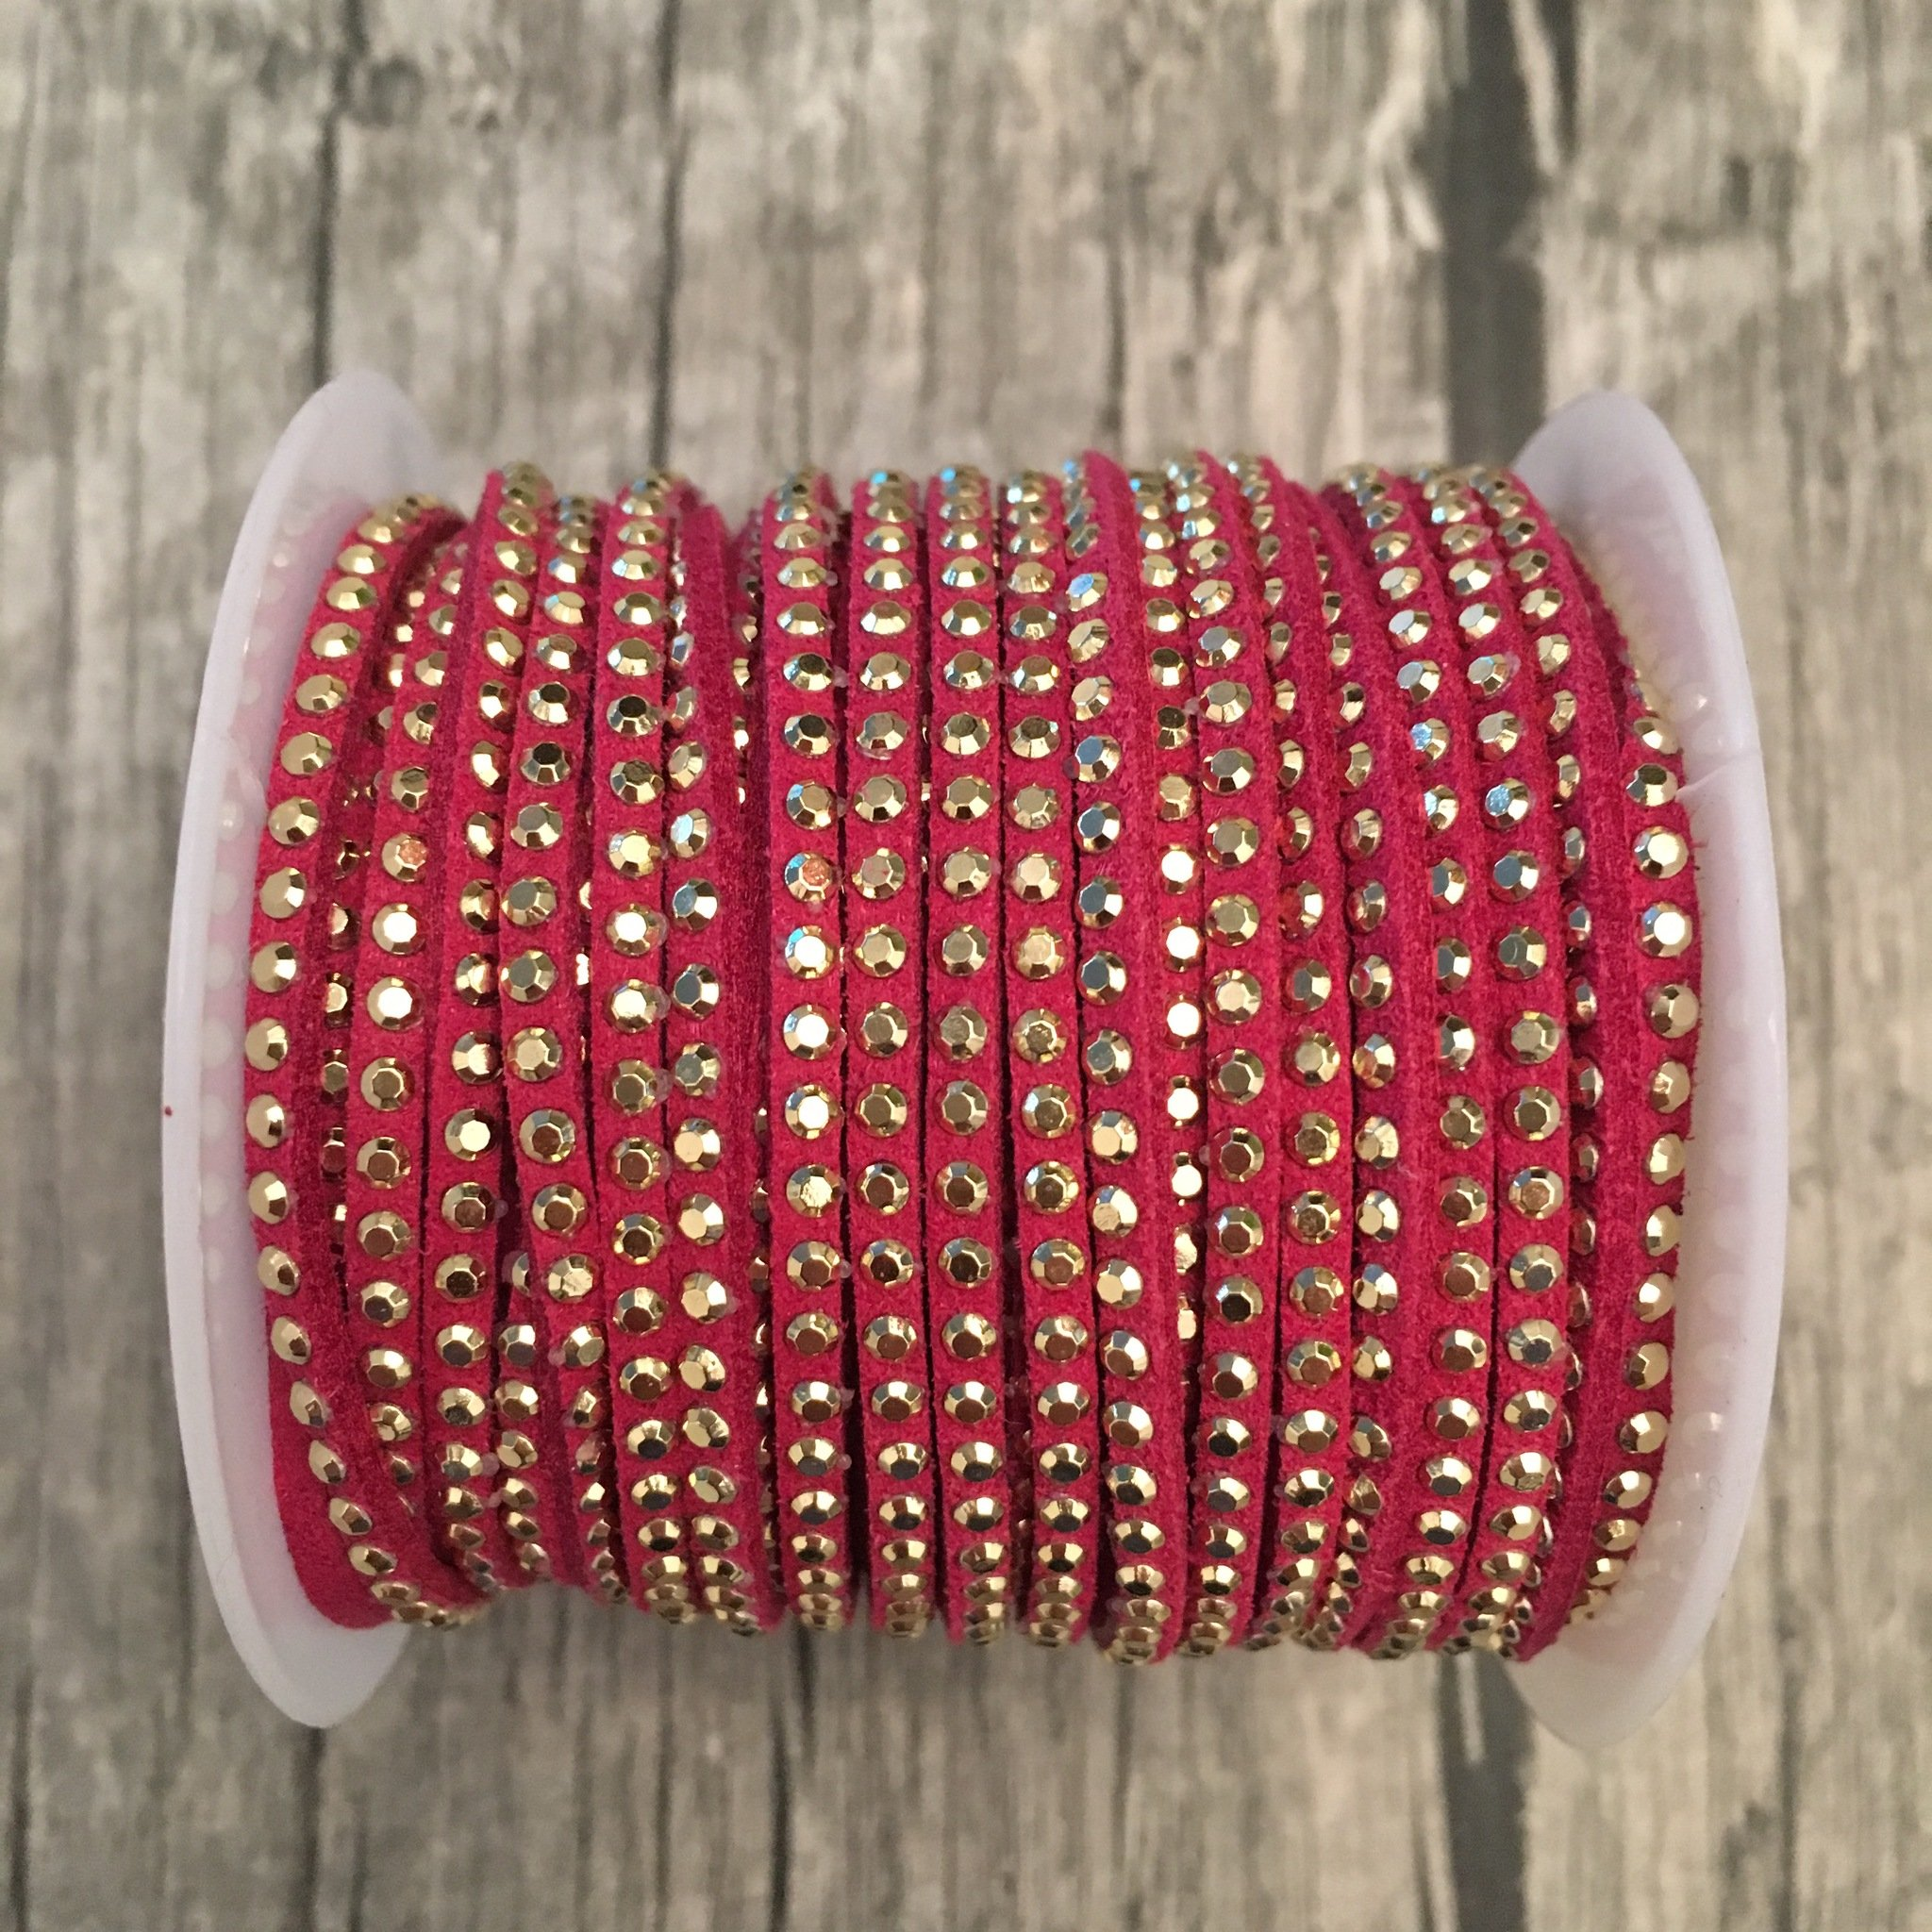 Band // Wildleder Imitat // 3mm // Fuchsia-Gold